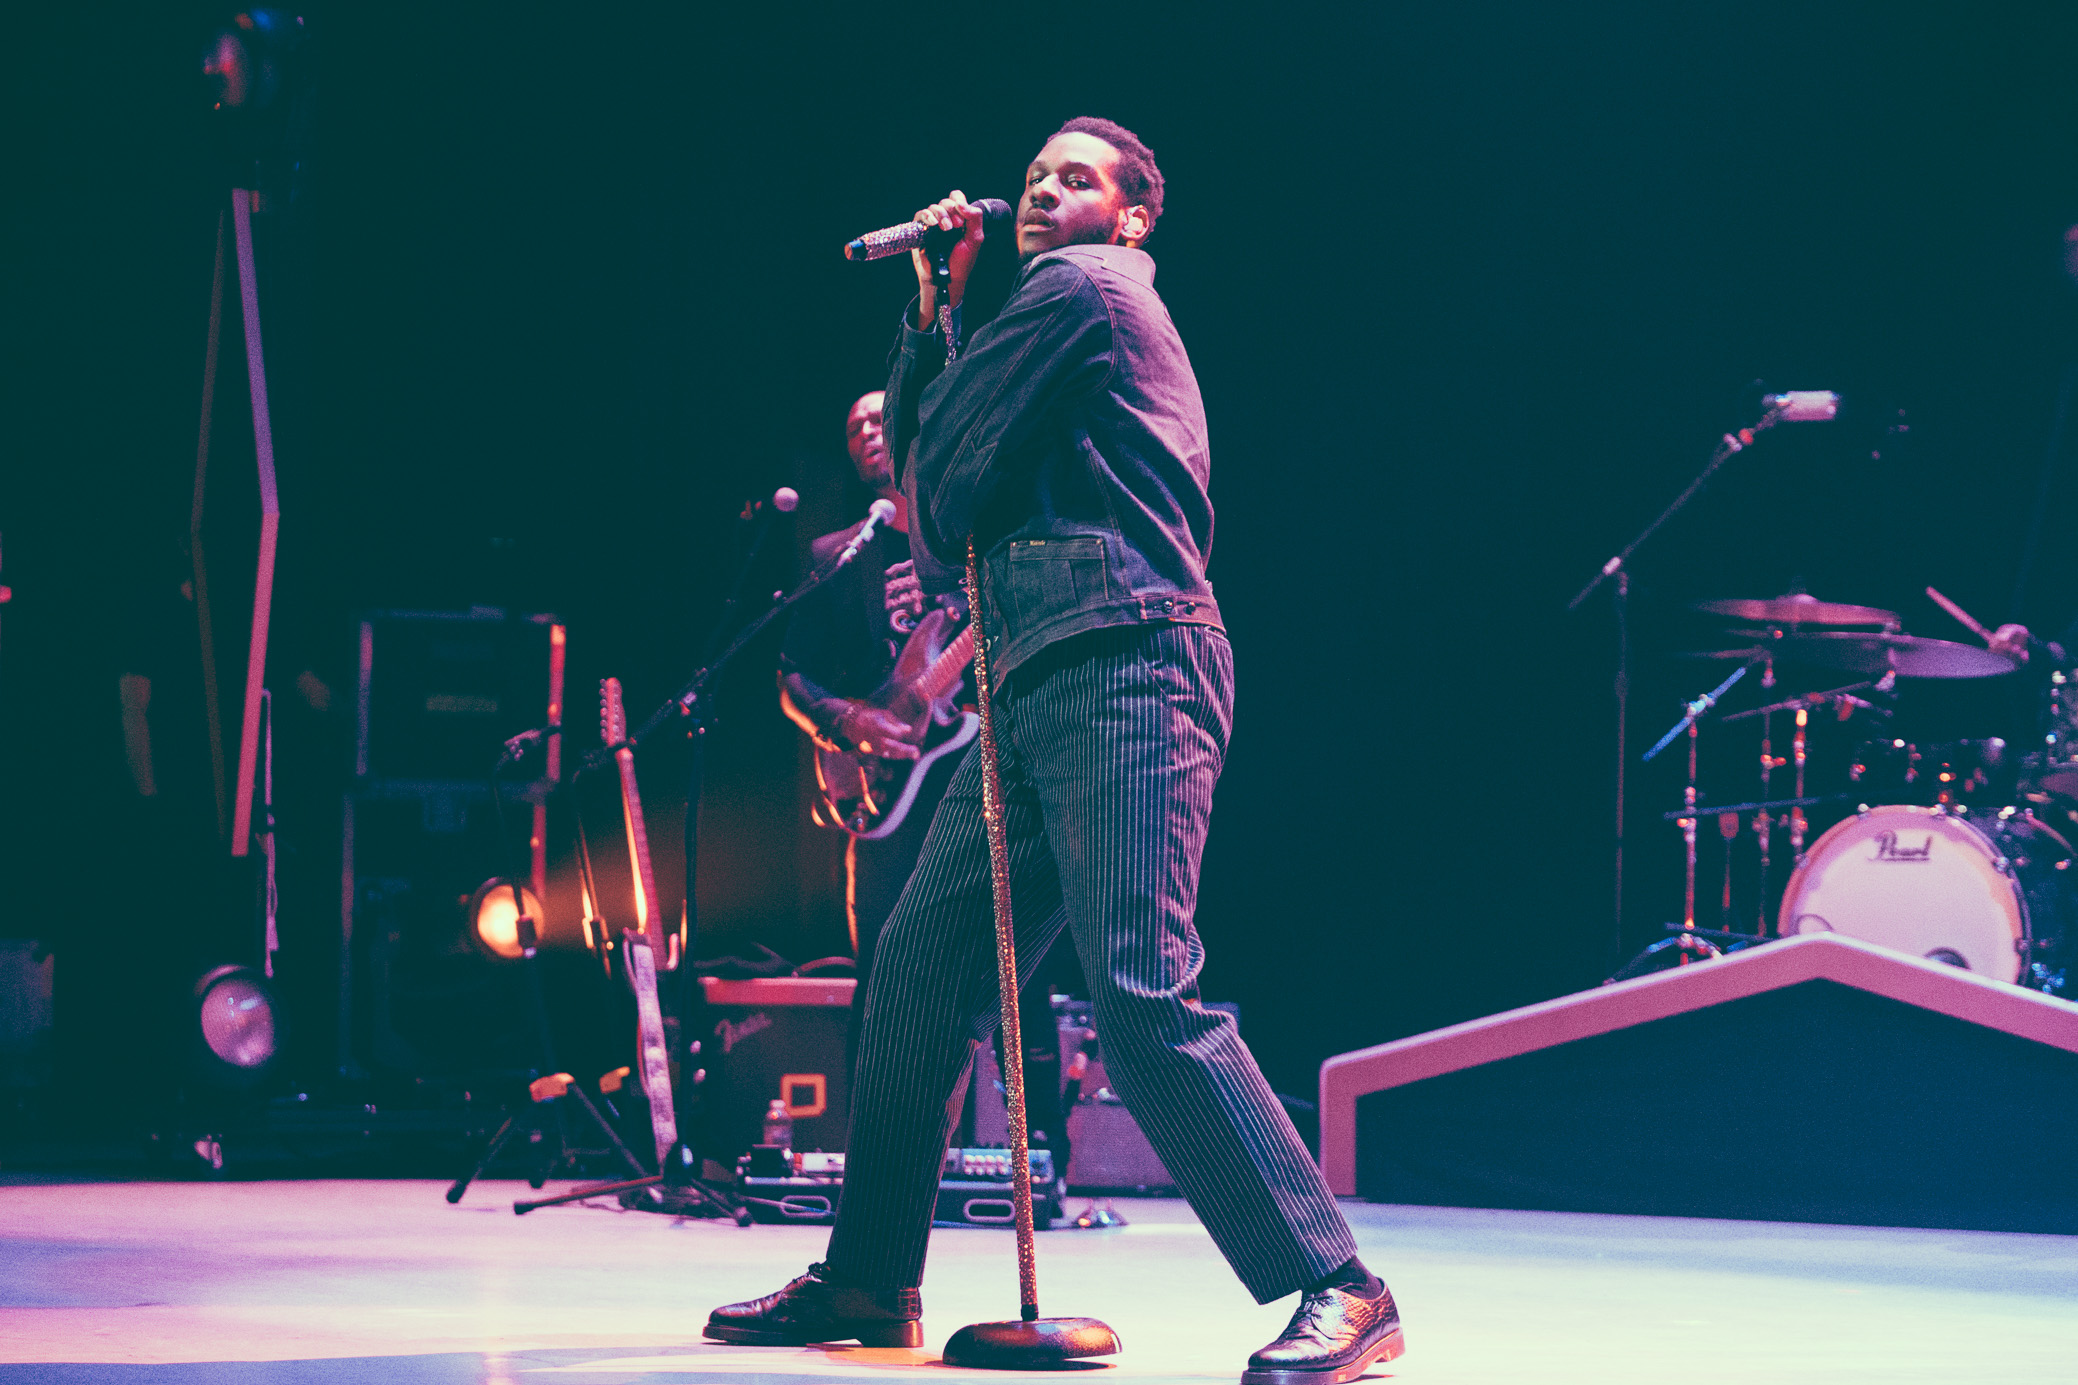 Leon Bridges performs in concert at the Birmingham-Jefferson Civic Center Concert Hall in Birmingham, Alabama on April 23rd, 2019. (Photo by David A. Smith / DSmithScenes)